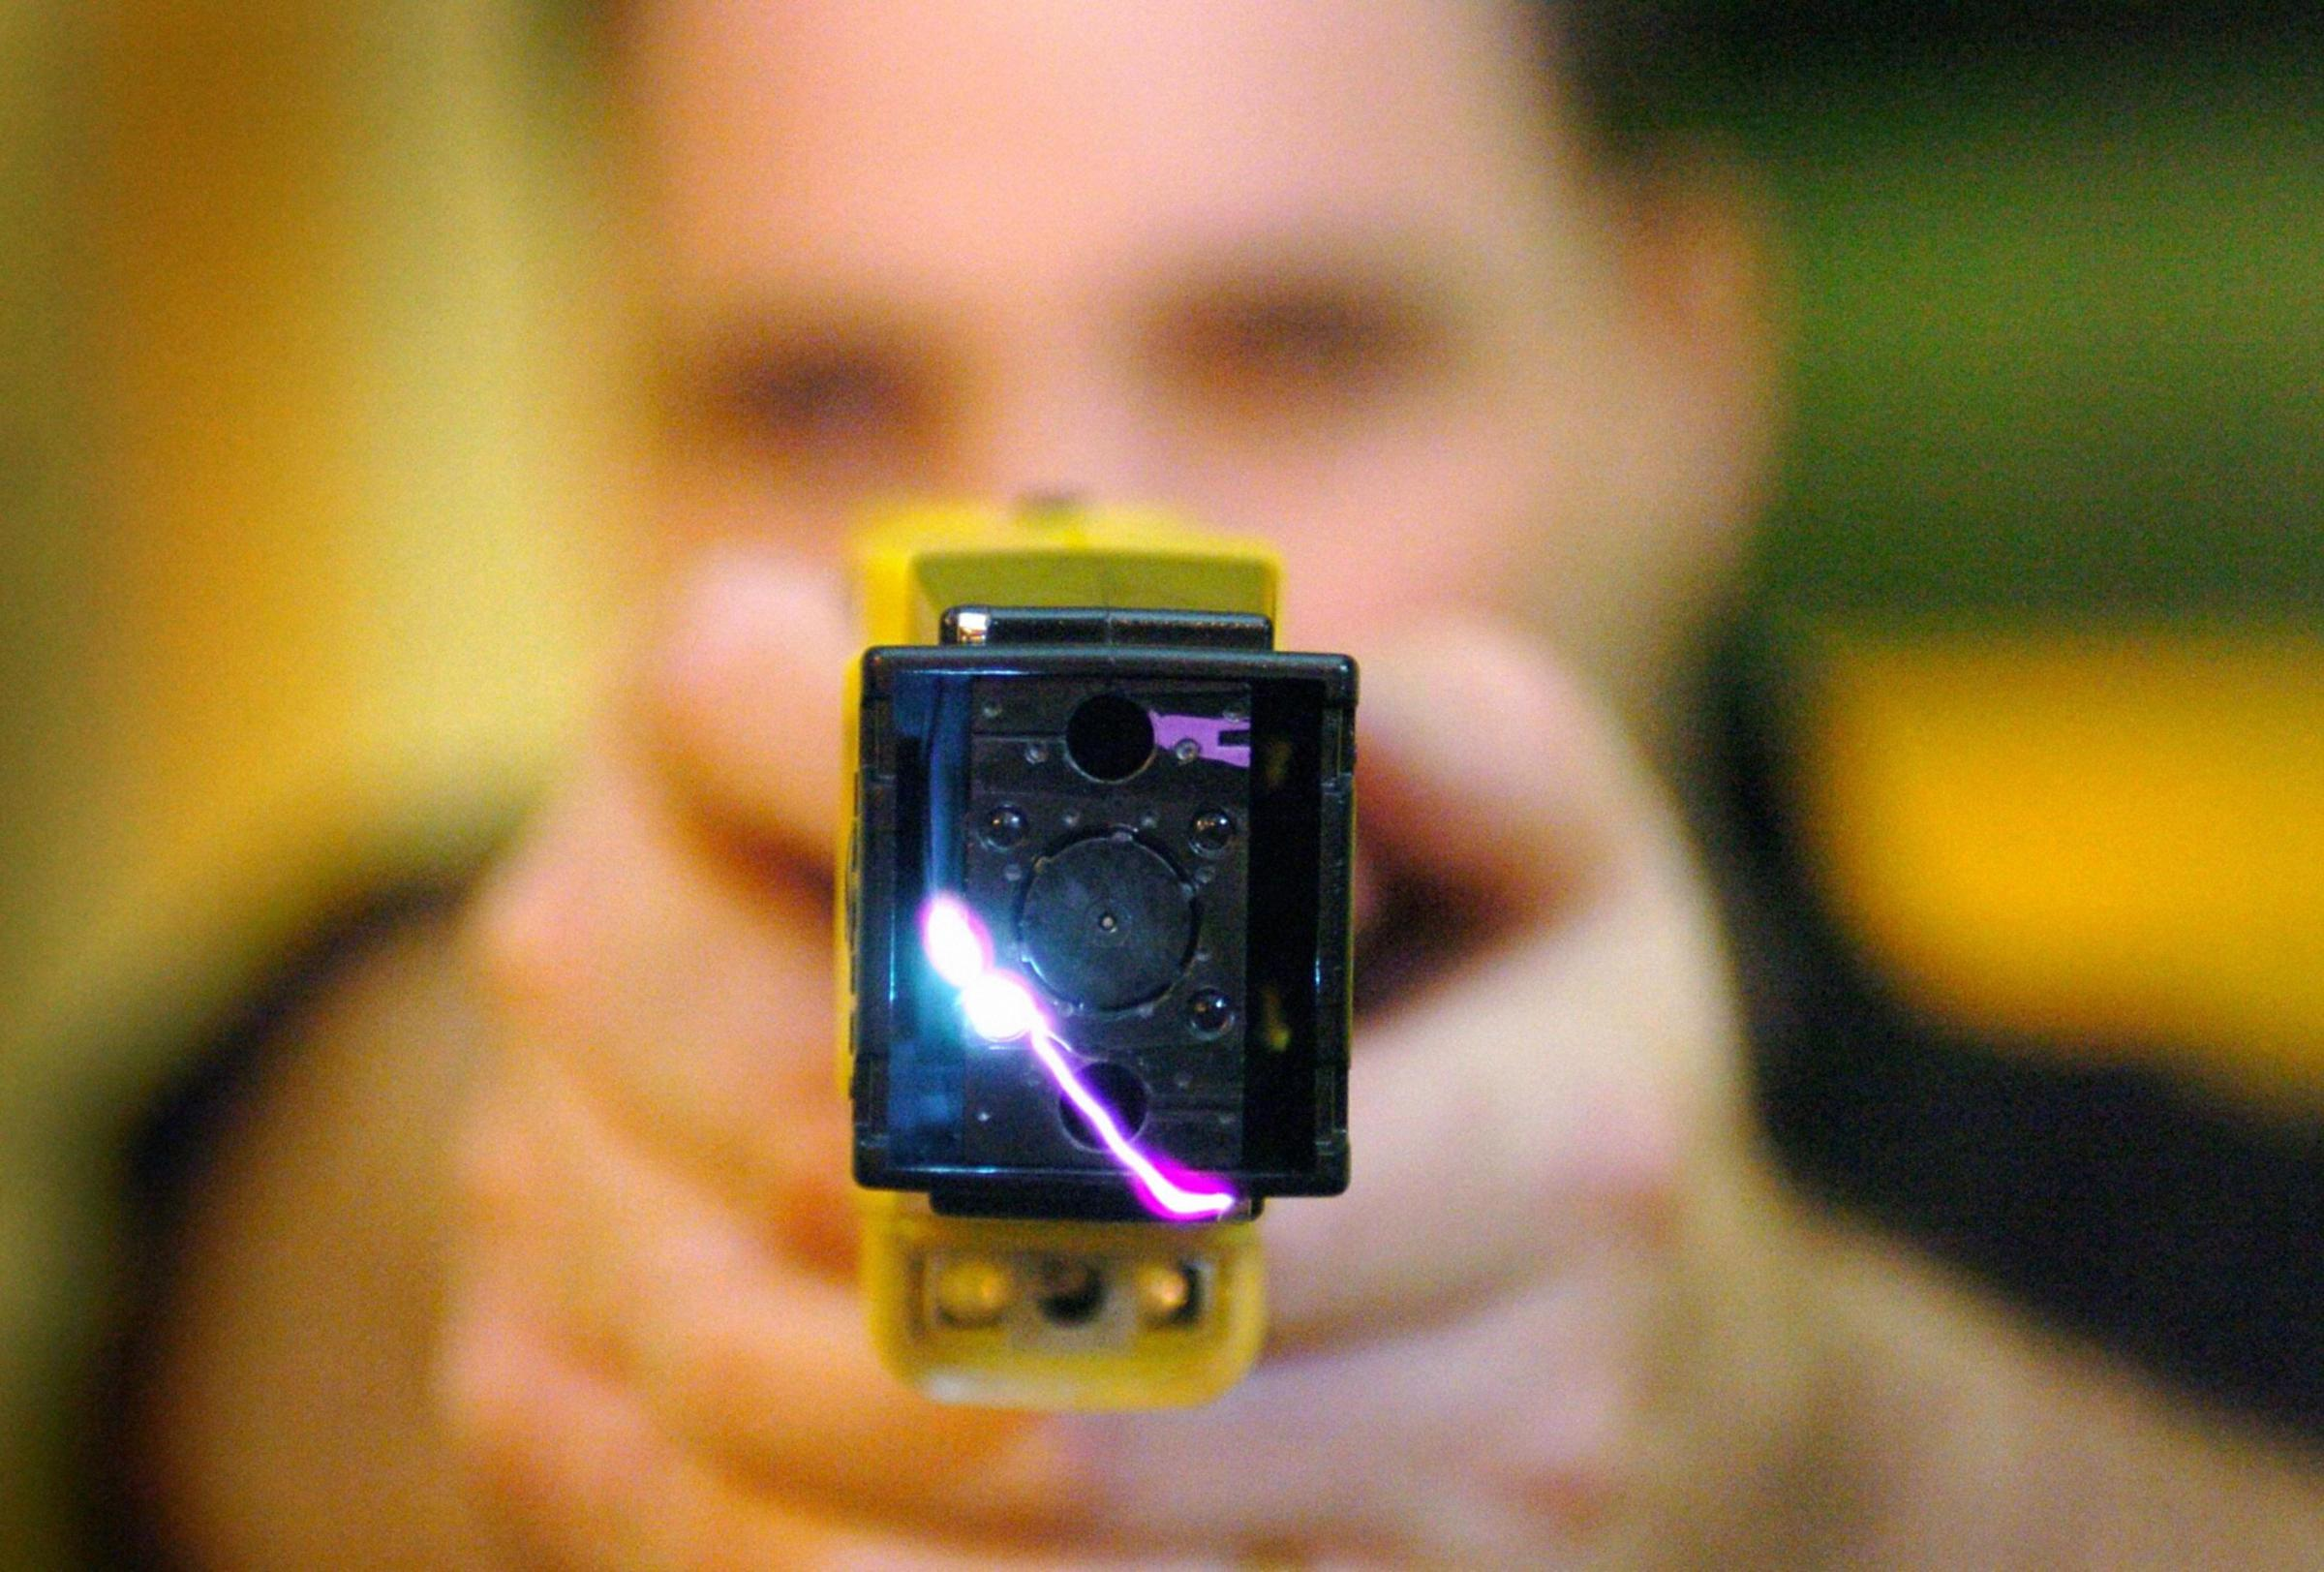 A Taser gun was used by police in Ludlow to subdue a man with mental health problems.